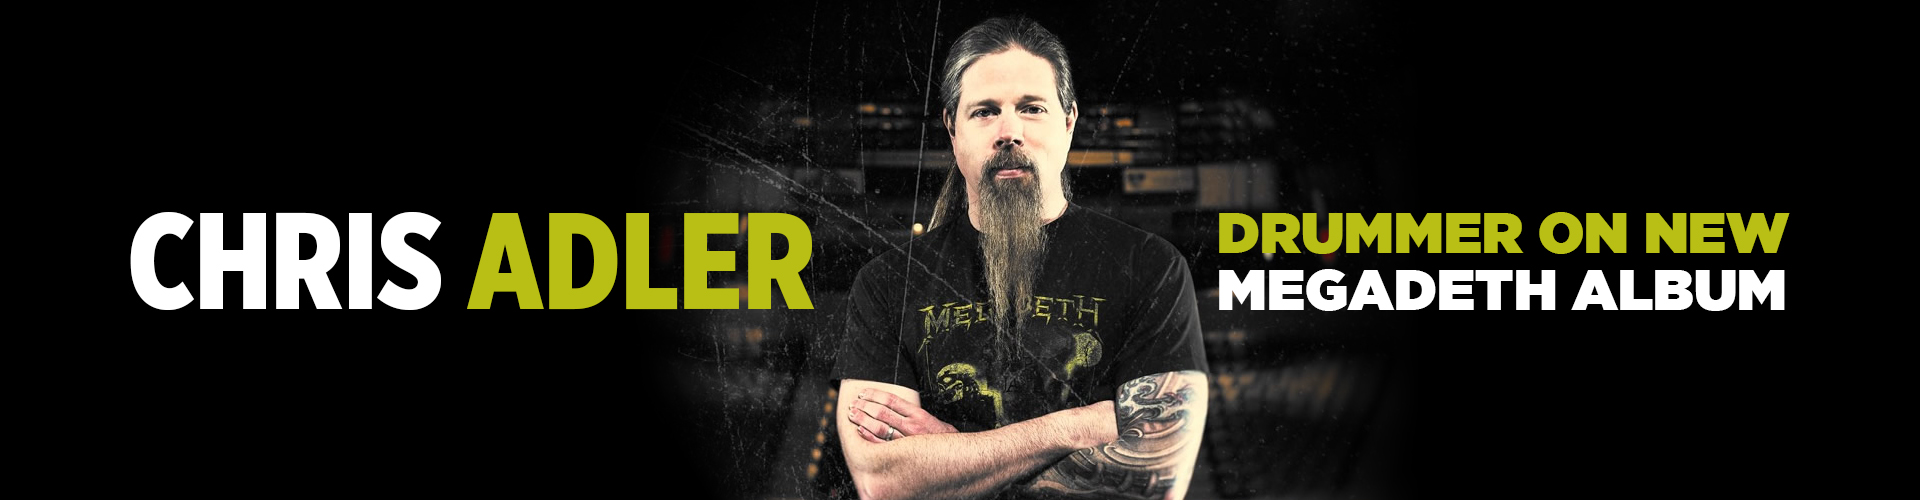 Chris Adler MEGADETH